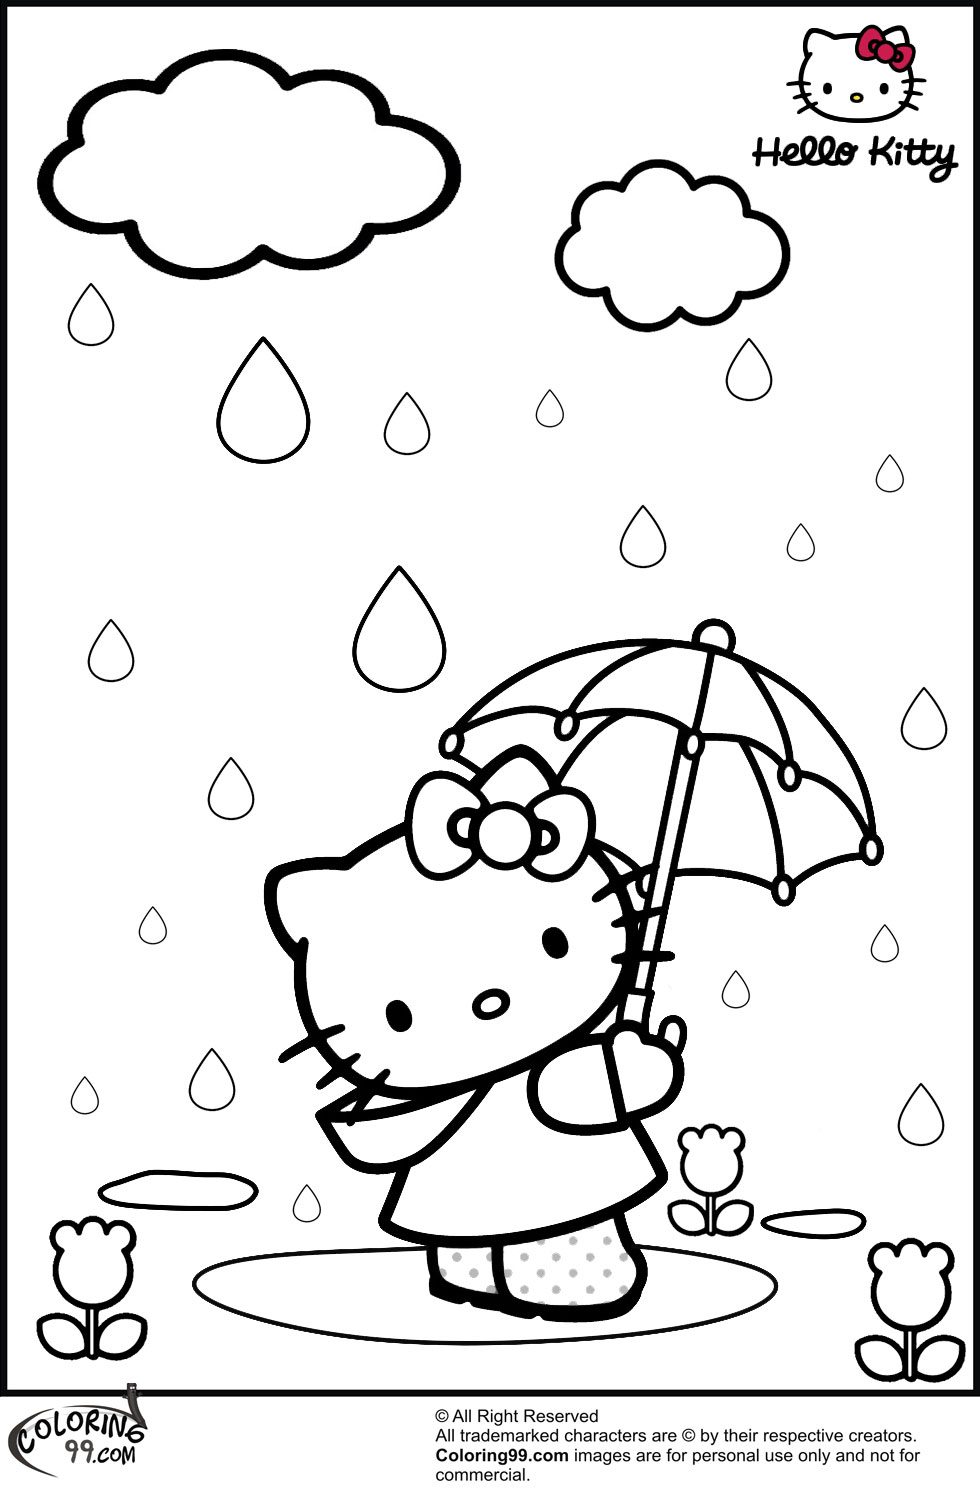 images of hello kitty coloring pages cute coloring page team colors kitty of hello images coloring pages